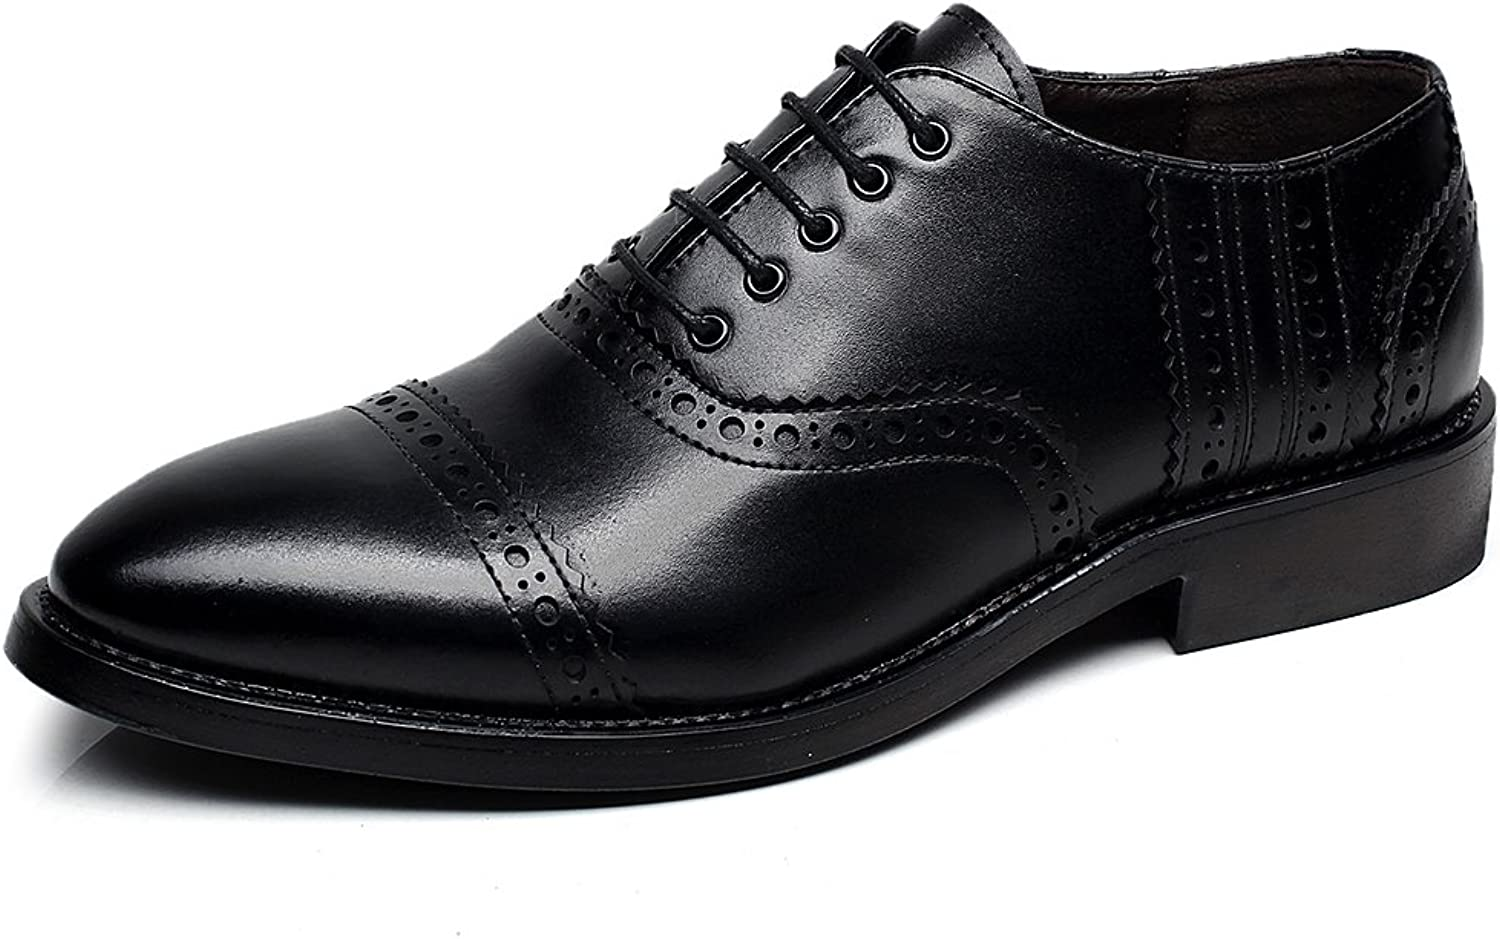 Rismart Men's Fashion Pointed-Toe Dress Leather shoes Classic Business Oxfords